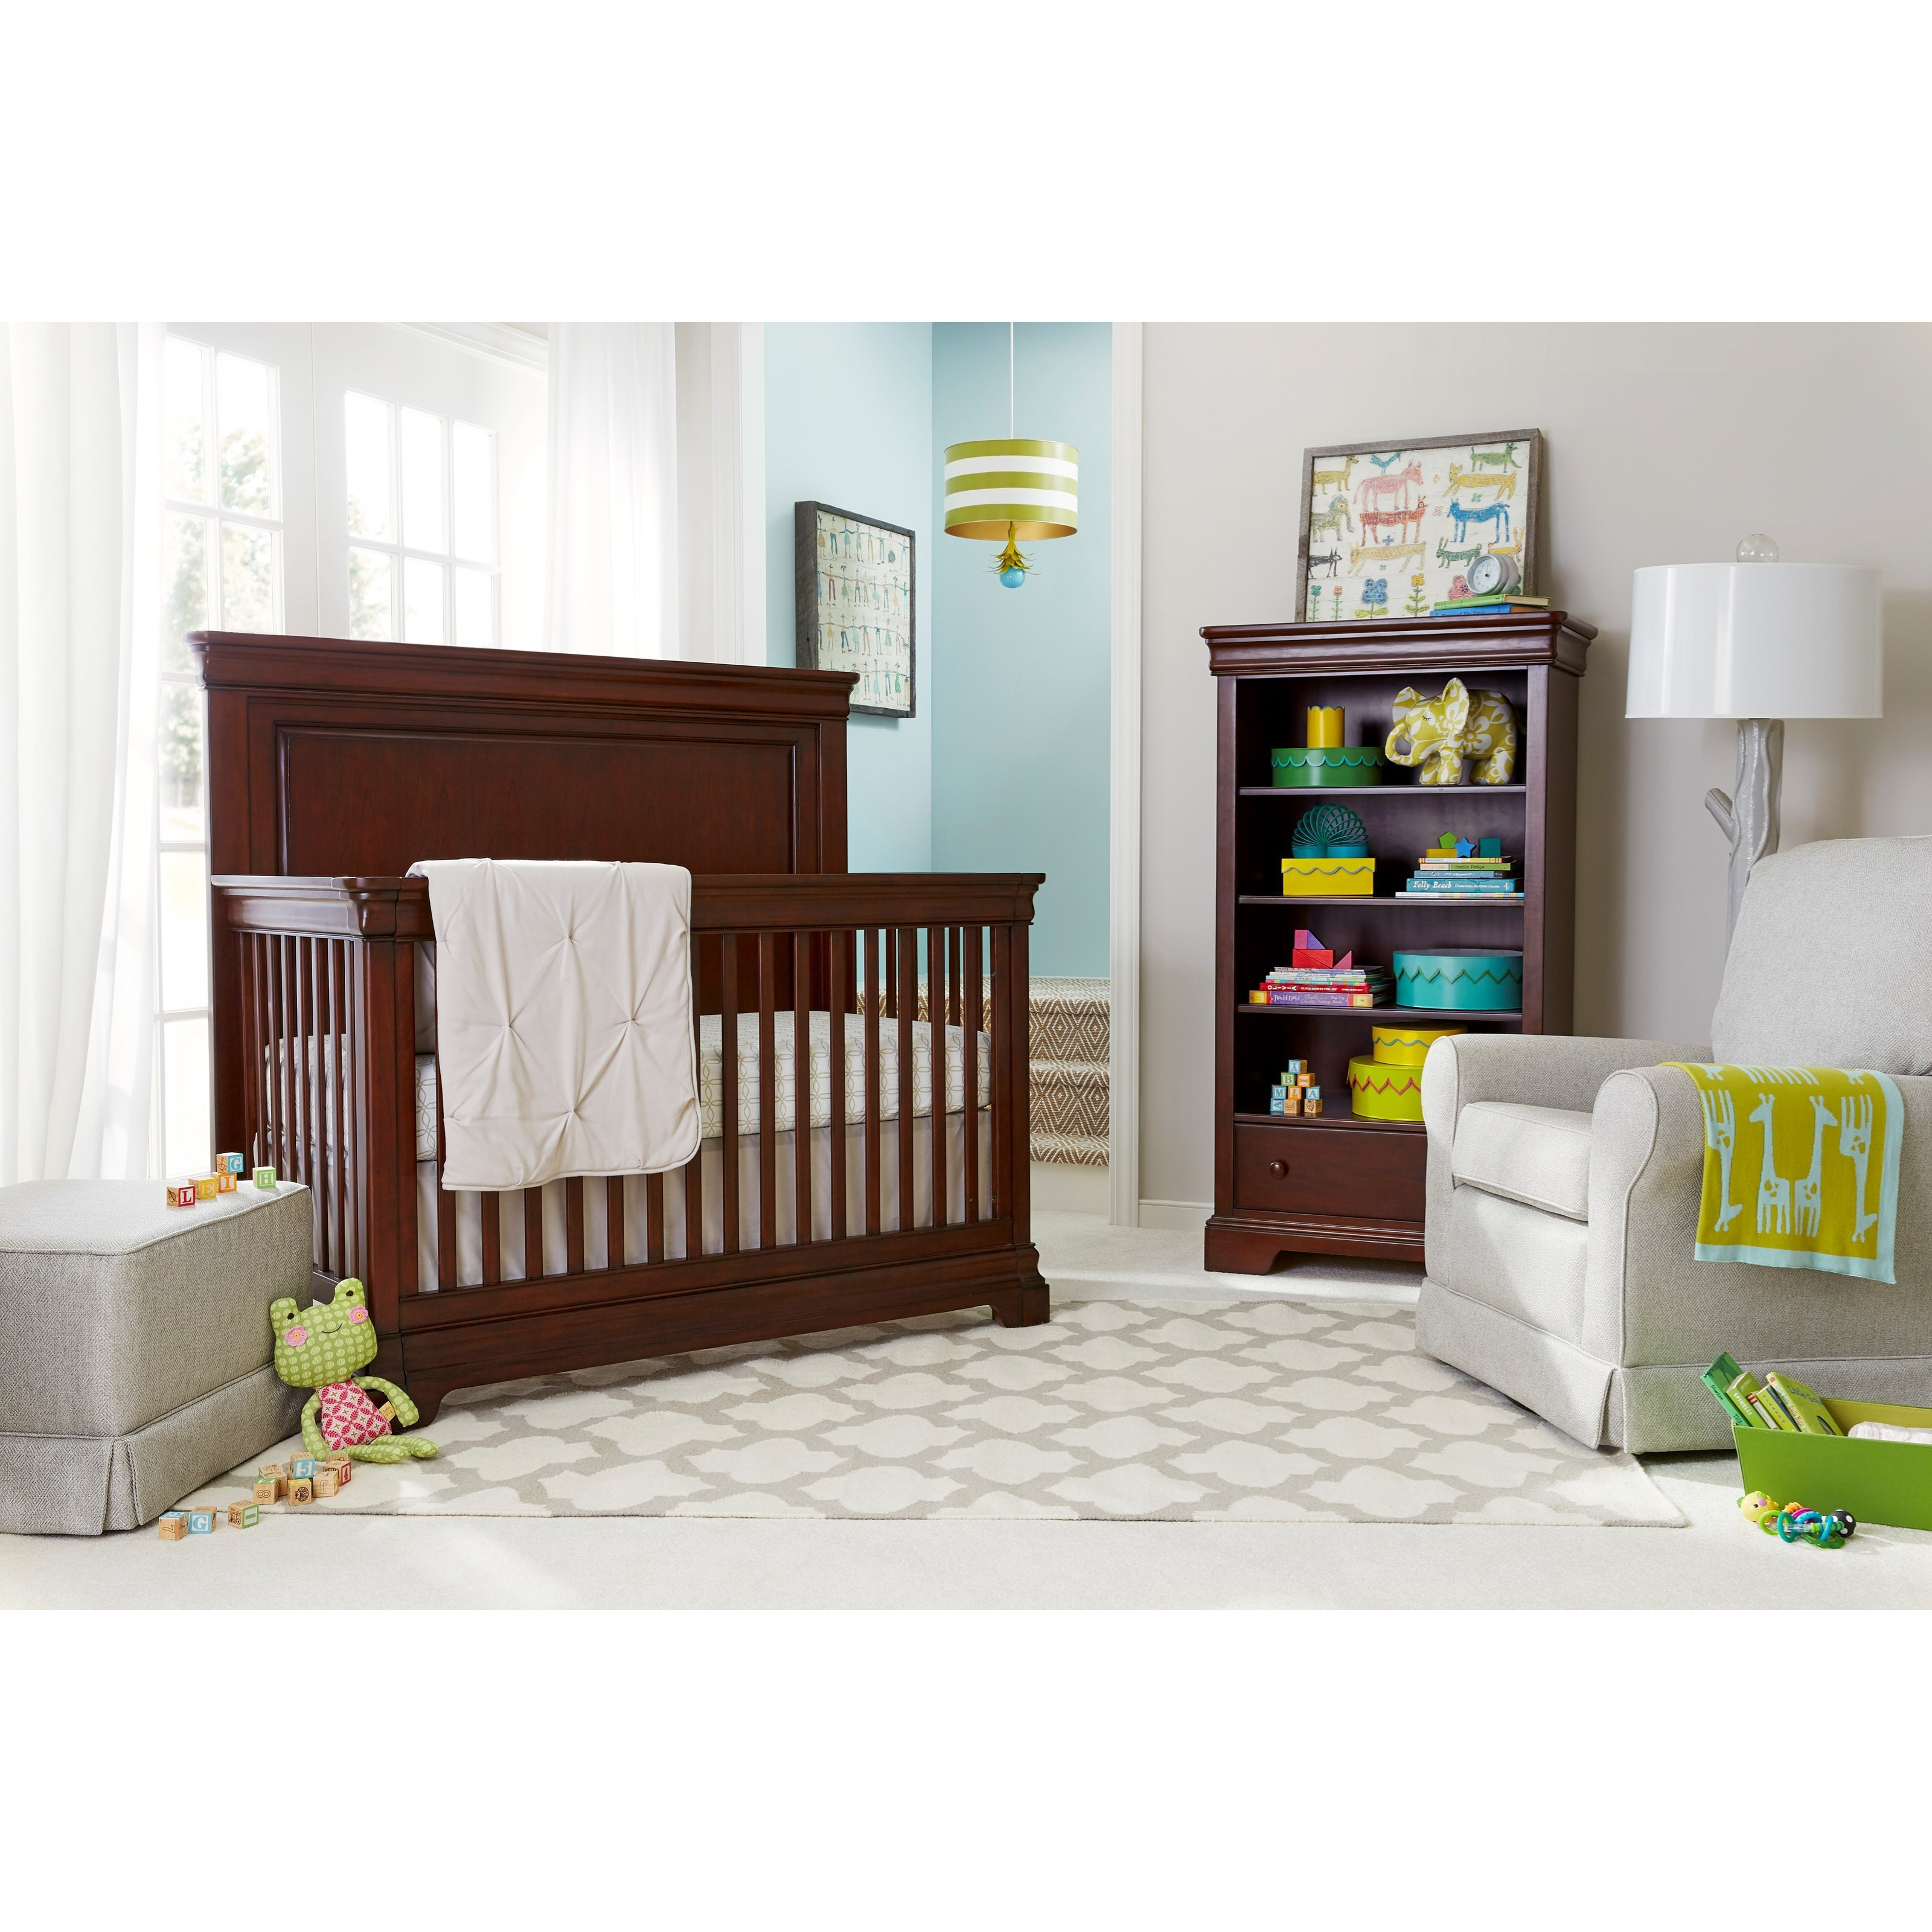 Stone & Leigh Furniture Teaberry Lane Crib Bedroom Group - Item Number: 575-13 C Bedroom Group 2